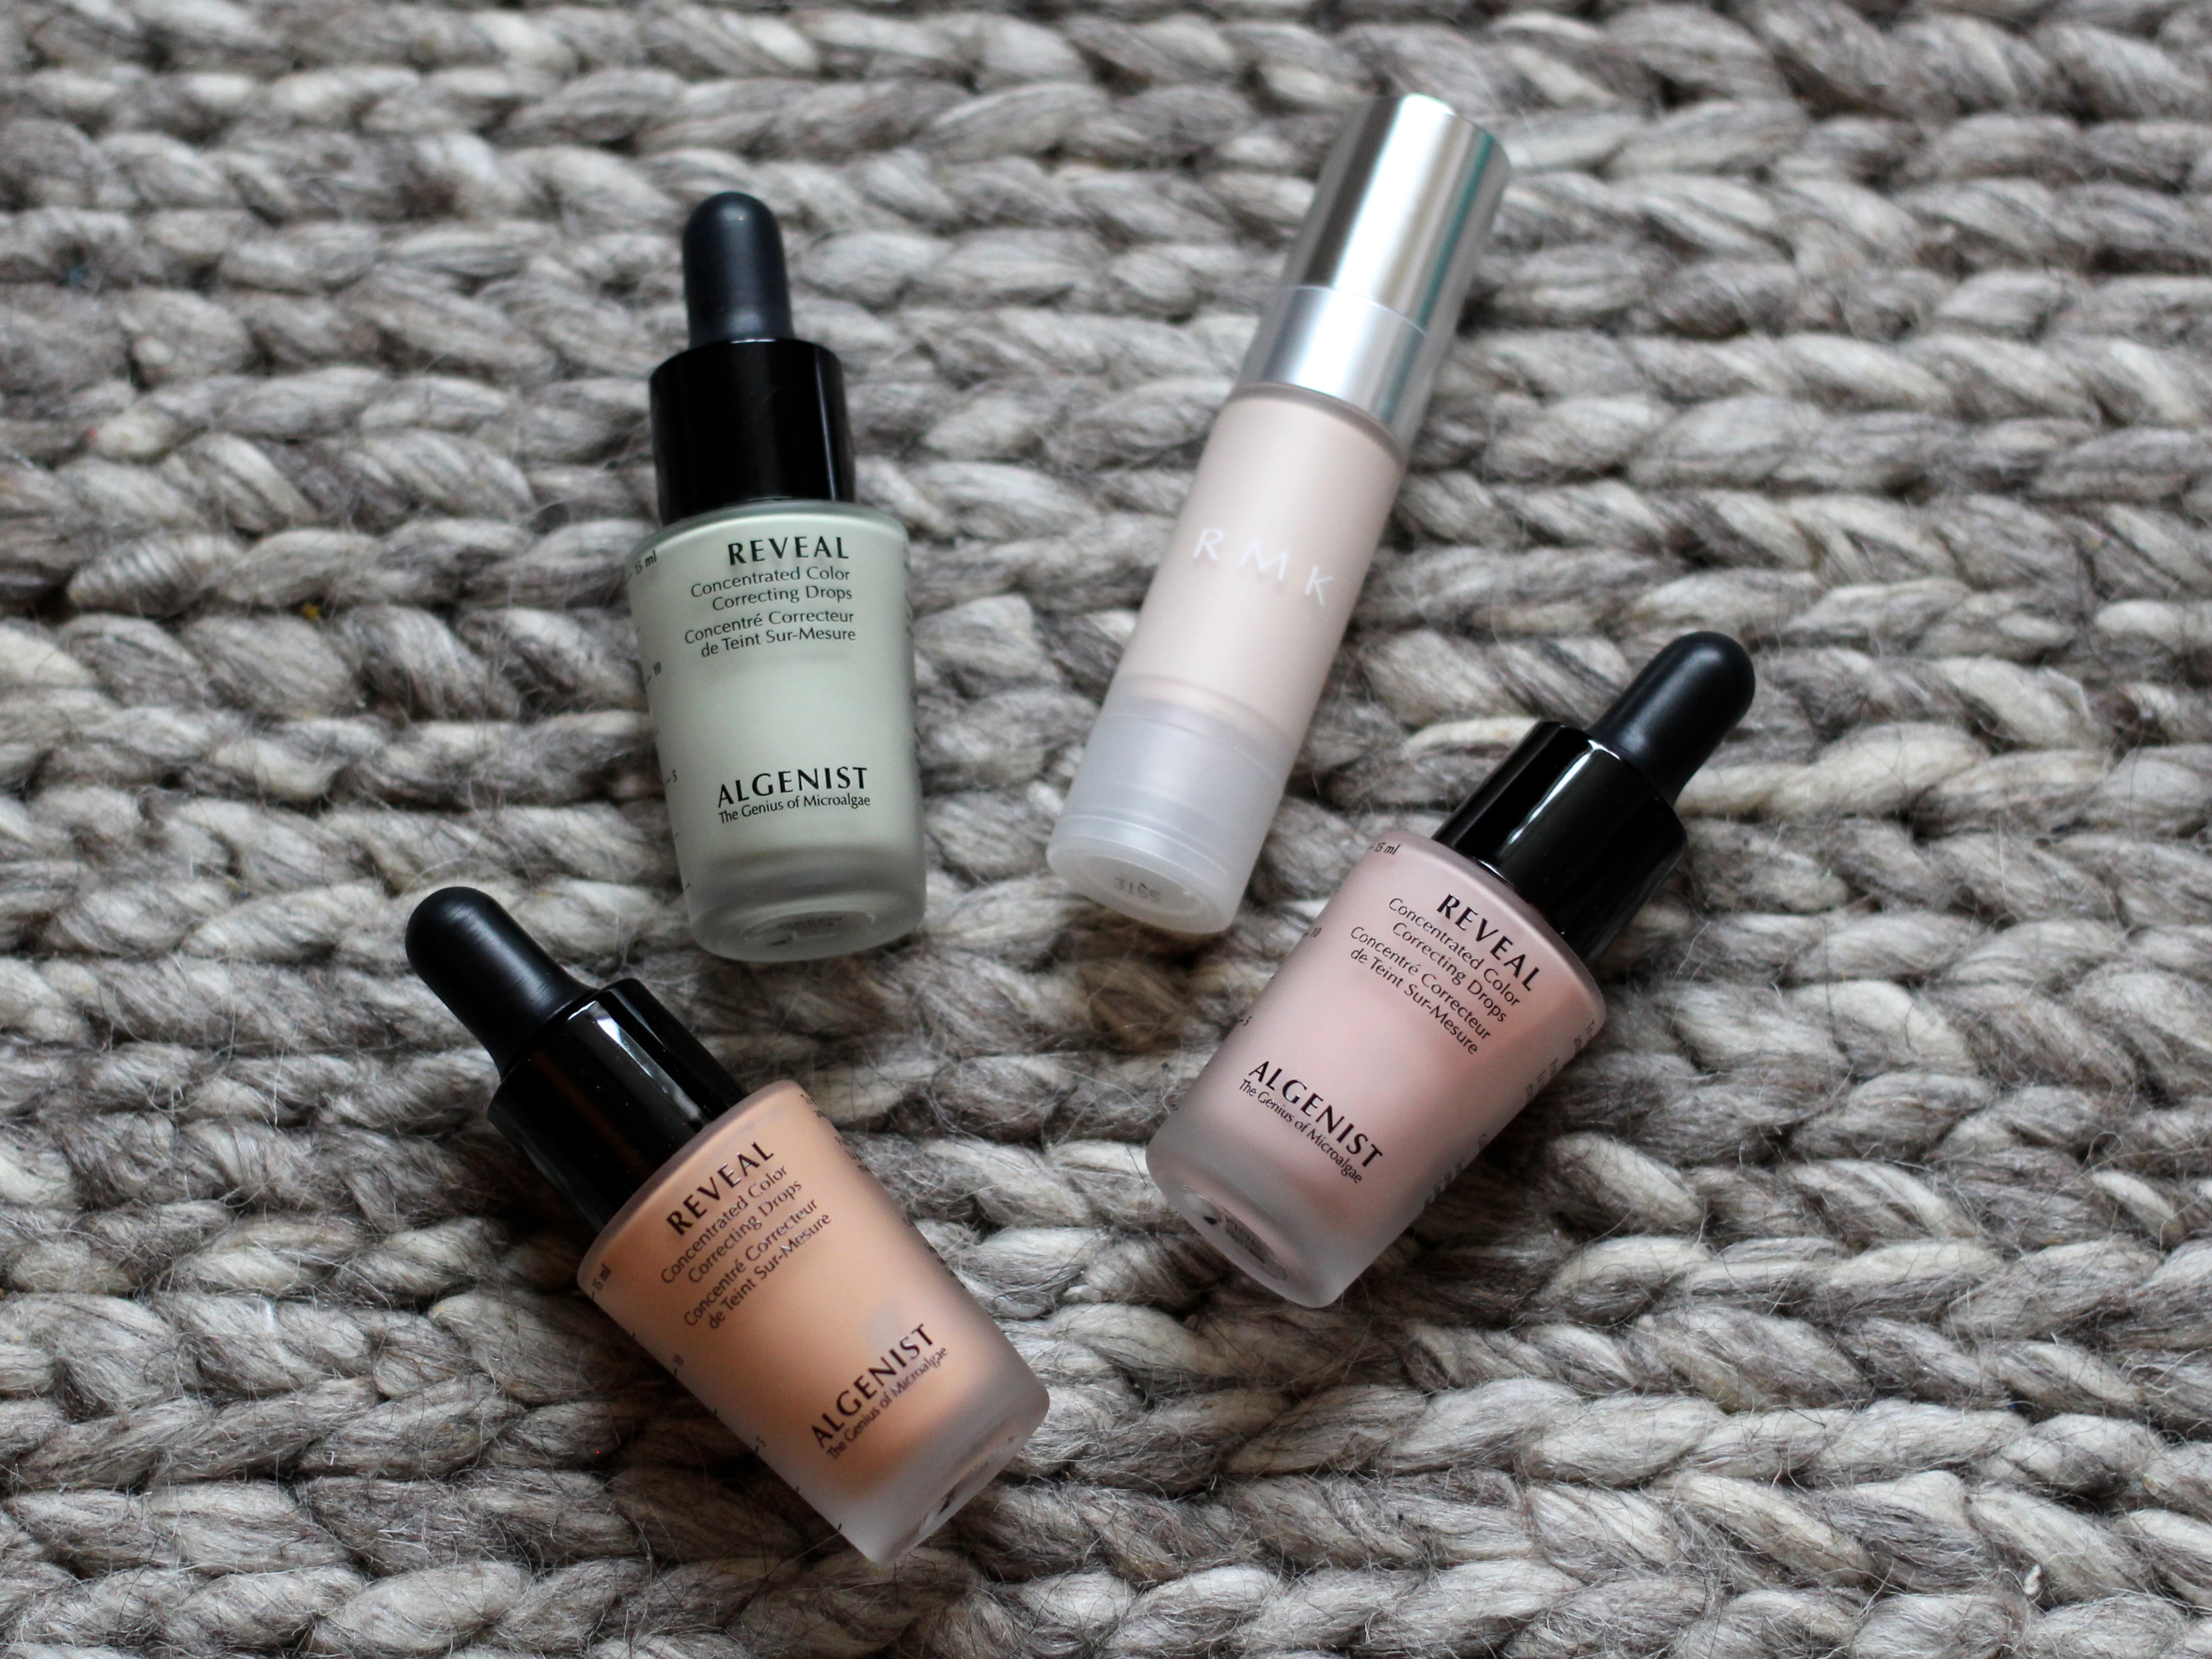 Algenist Reveal and RMK Colour Correcting Primer Review